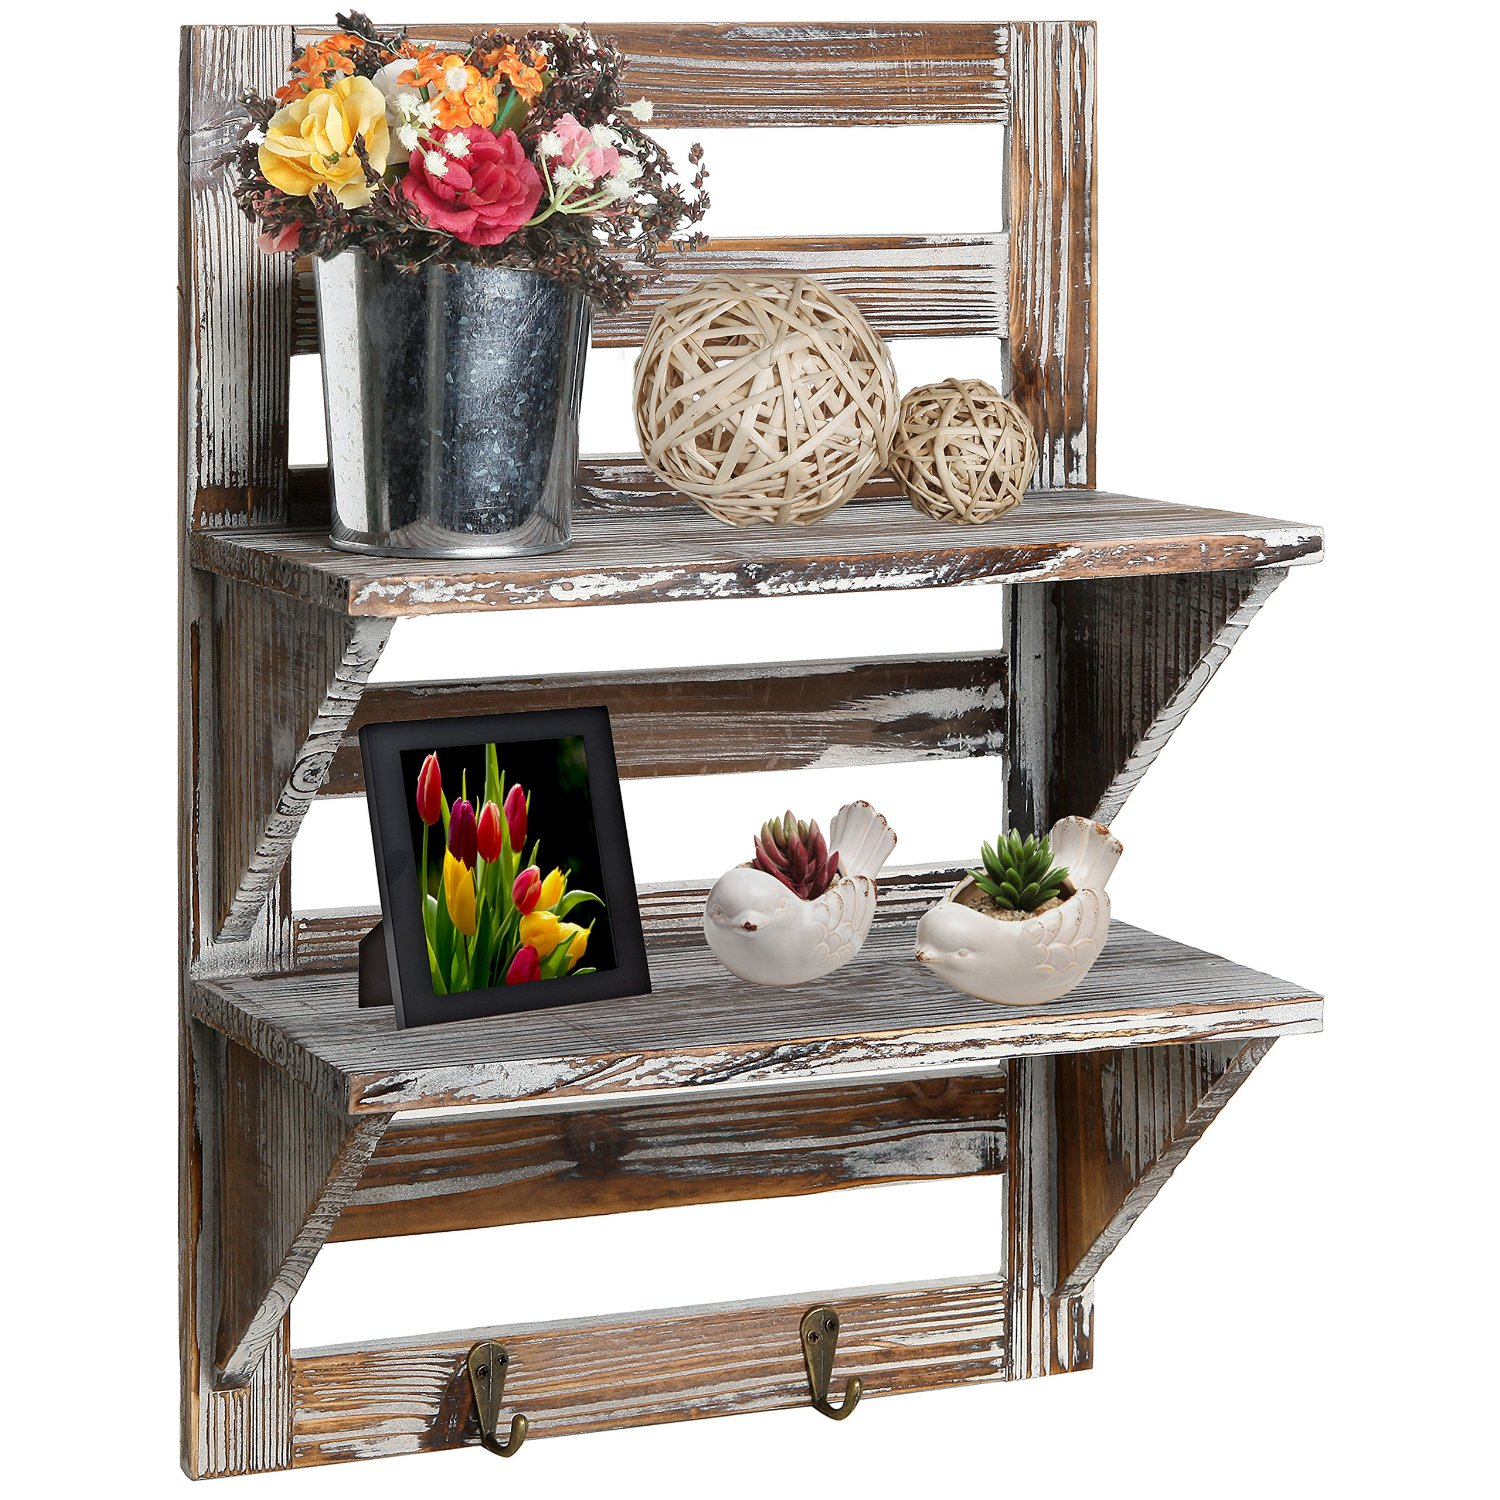 Rustic bathroom shelves idea - great for a small country rustic bathroom